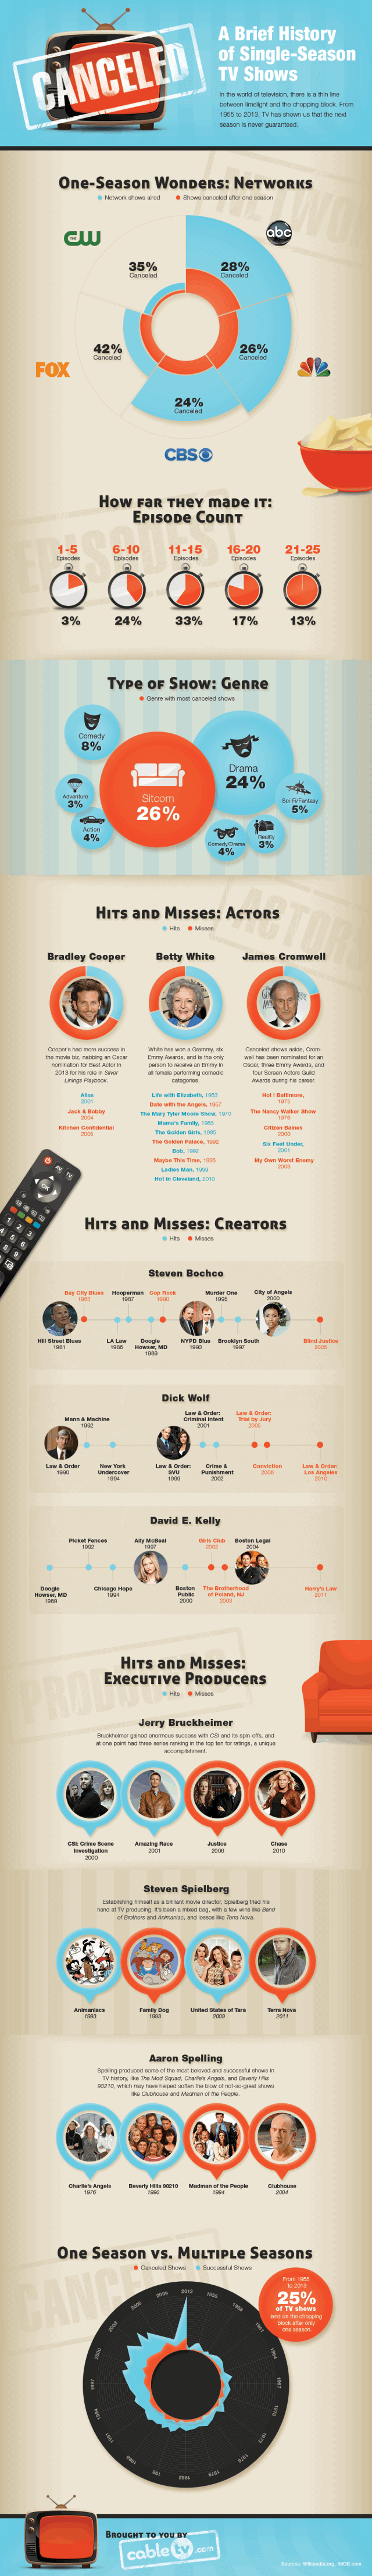 Canceled: A Brief History of Single-Season TV Shows [Infographic]